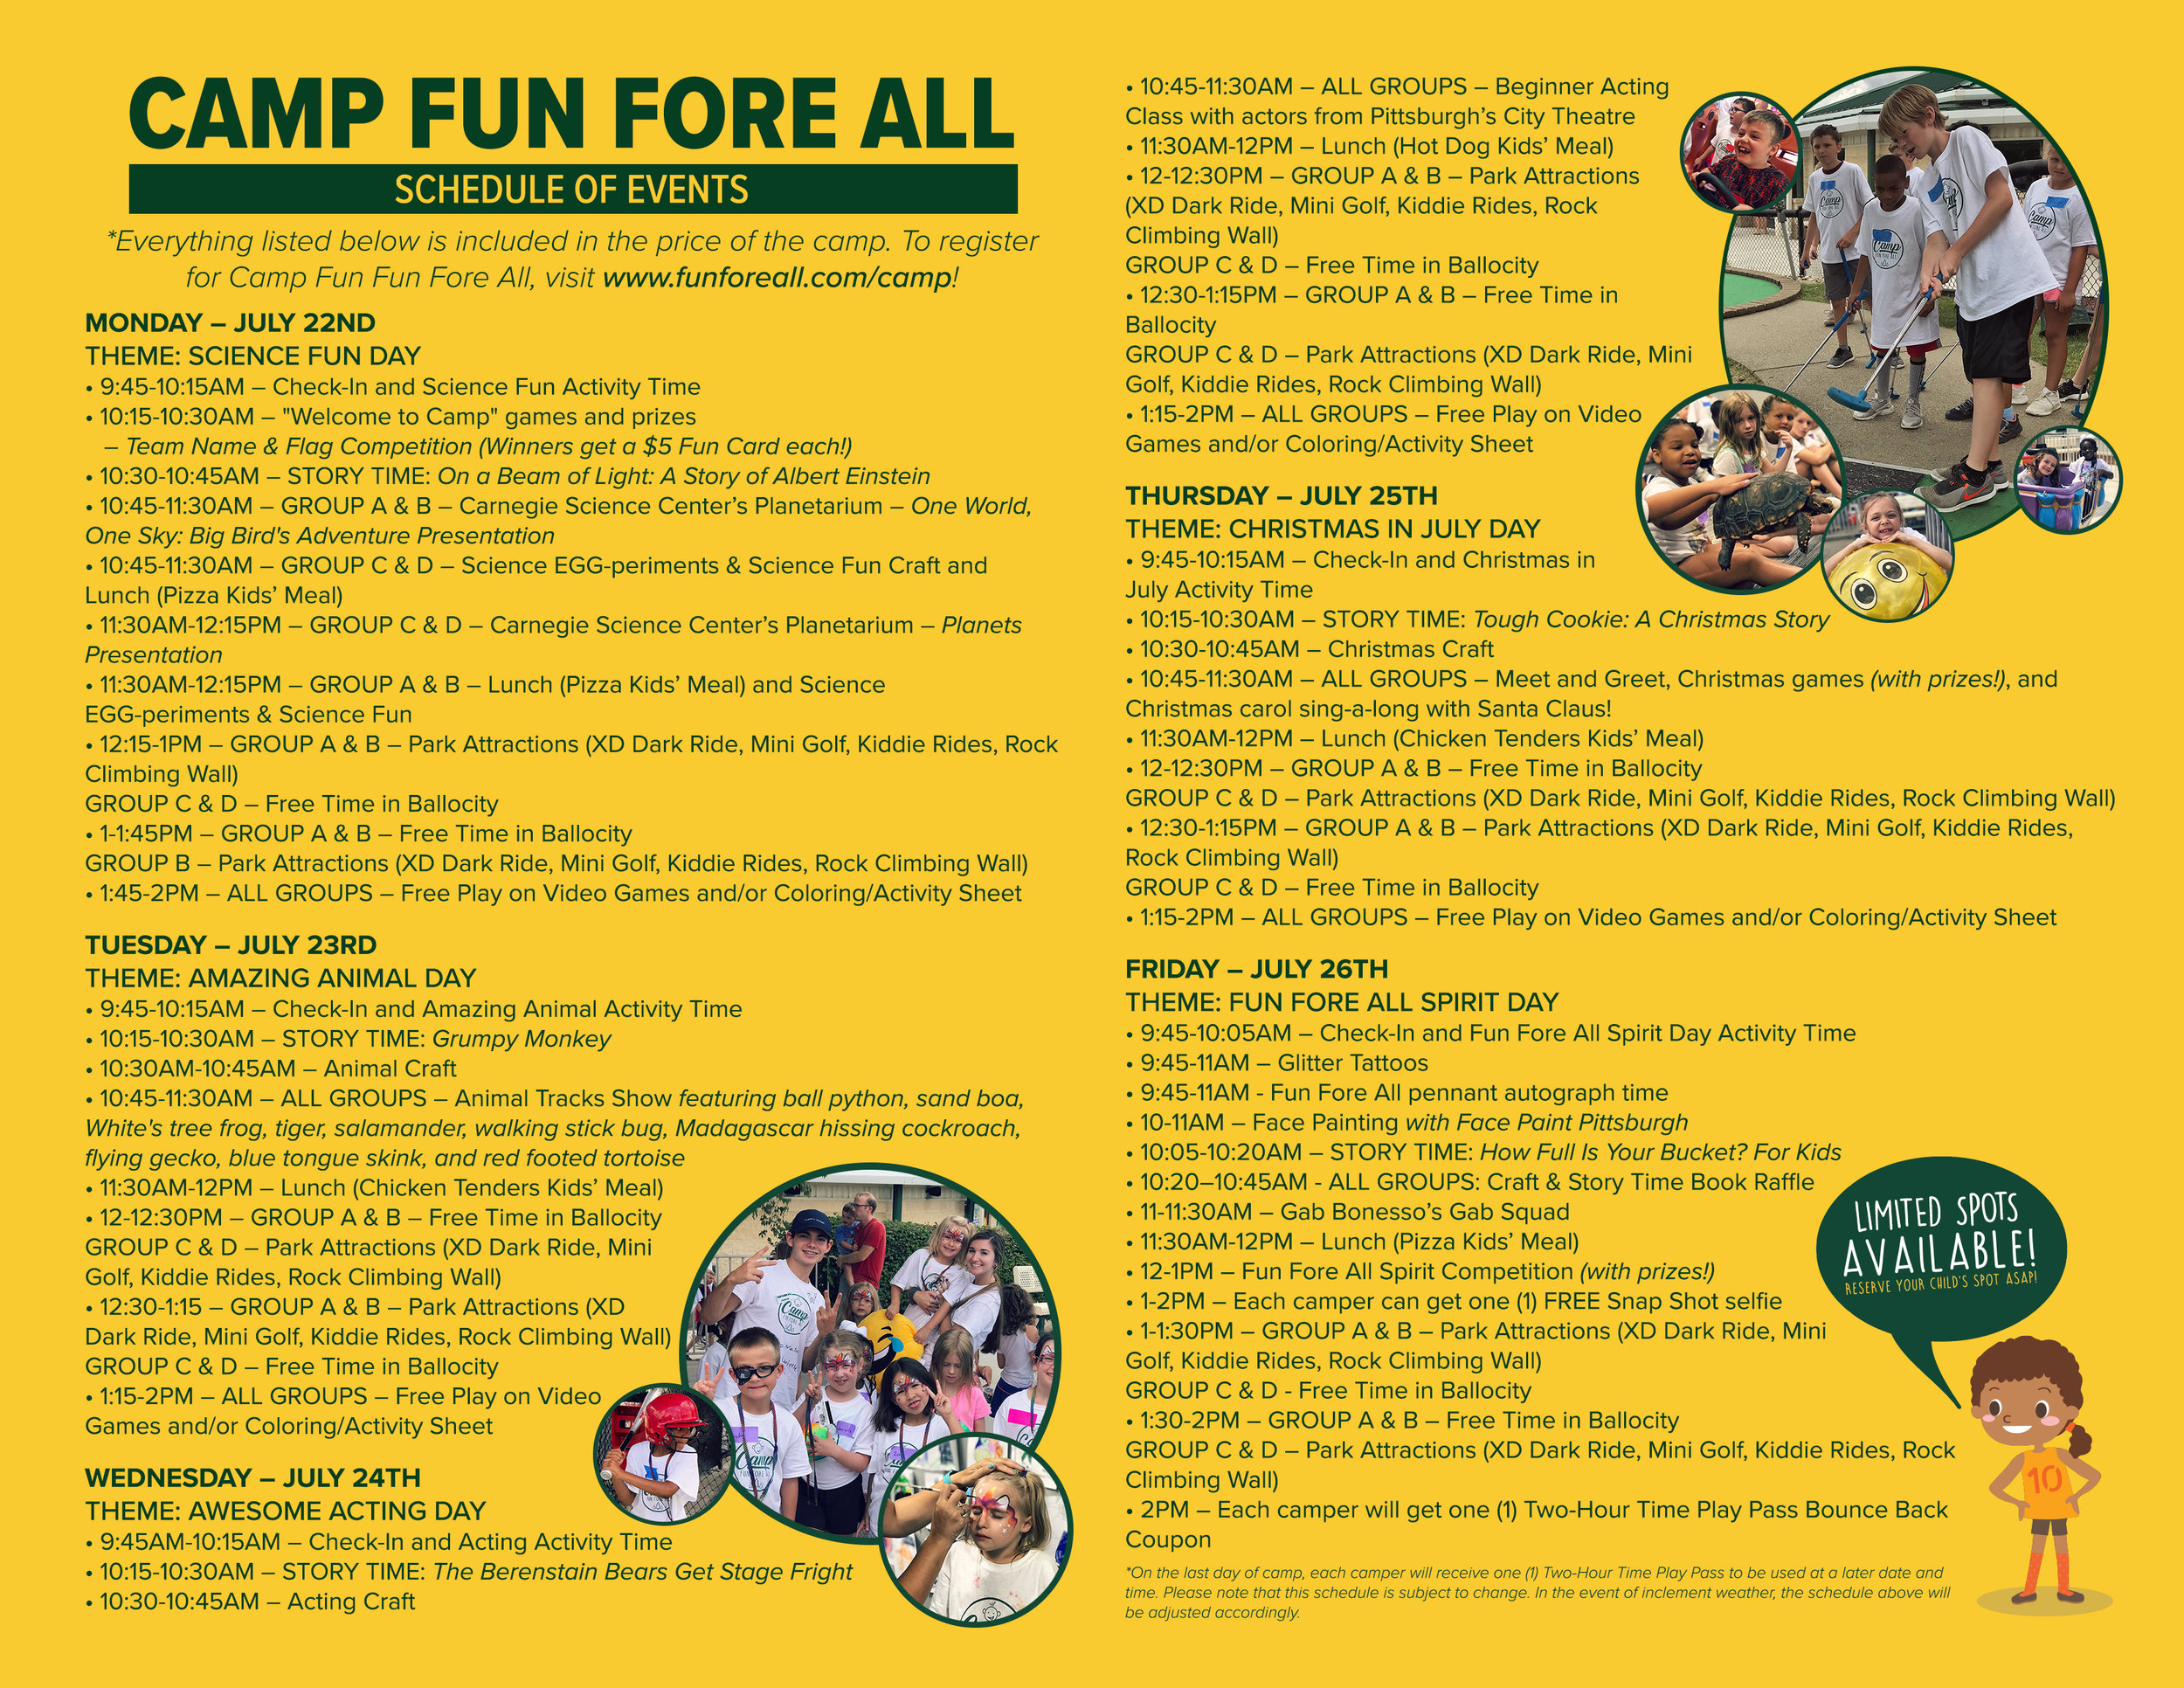 CAMP FUN FORE ALL FLYER (INSIDE) 2019